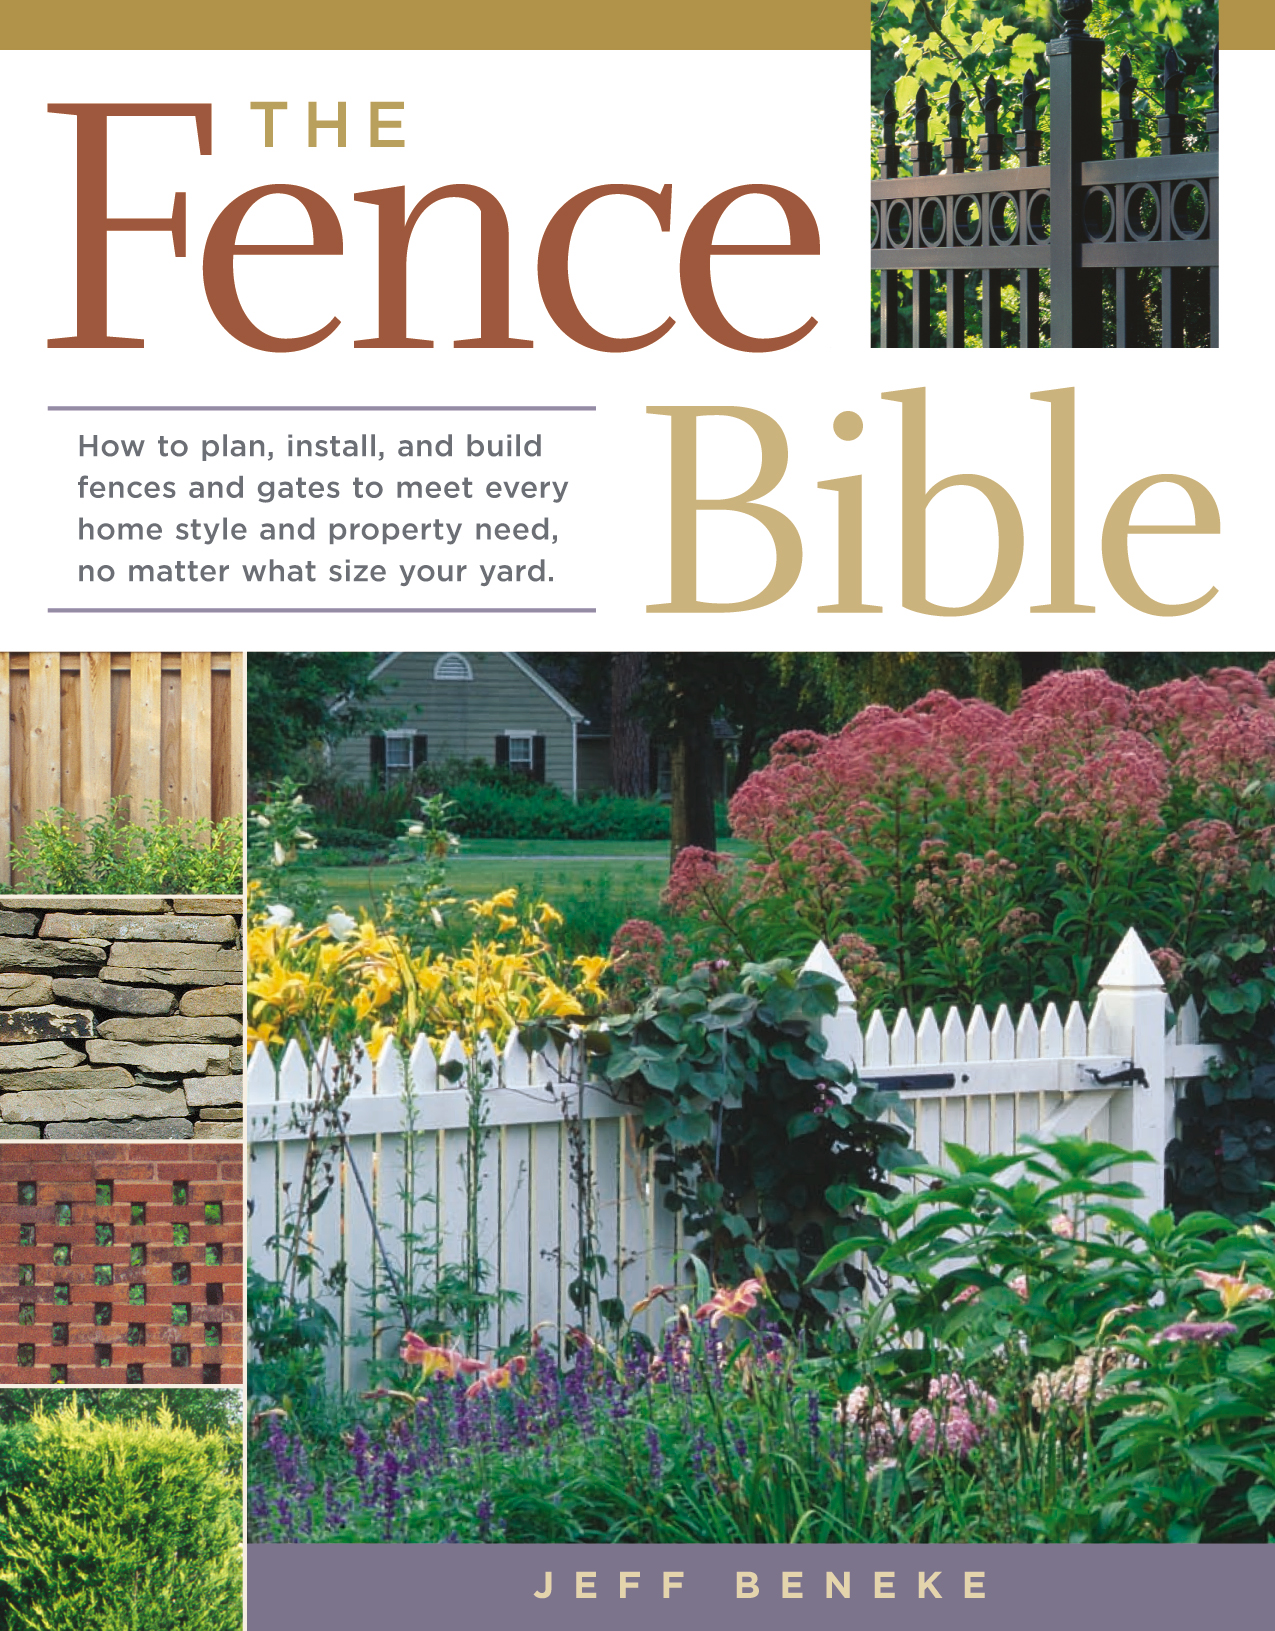 The Fence Bible How to plan, install, and build fences and gates to meet every home style and property need, no matter what size your yard. - Jeff Beneke